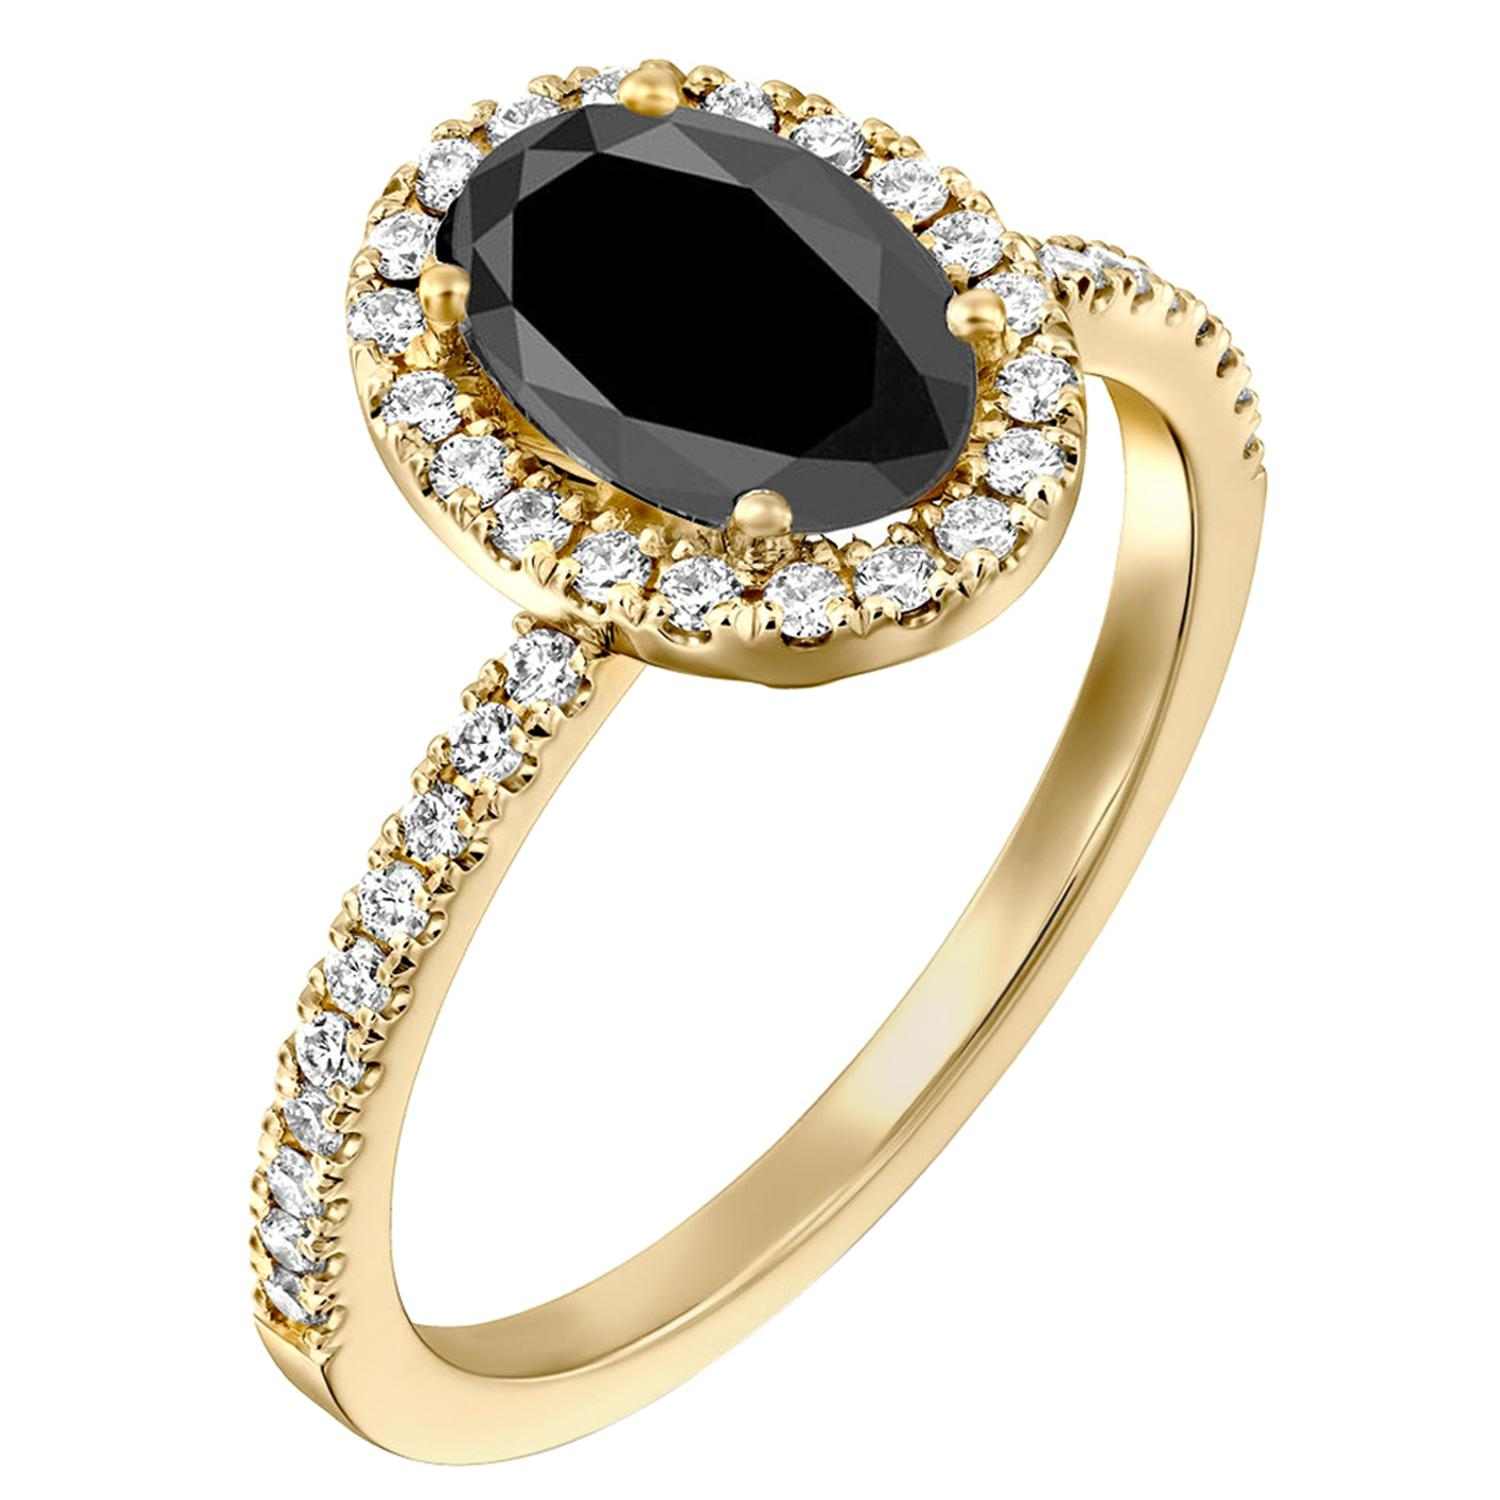 1.5 Carat 14 Karat Yellow Gold Certified Oval Black Diamond Engagement Ring